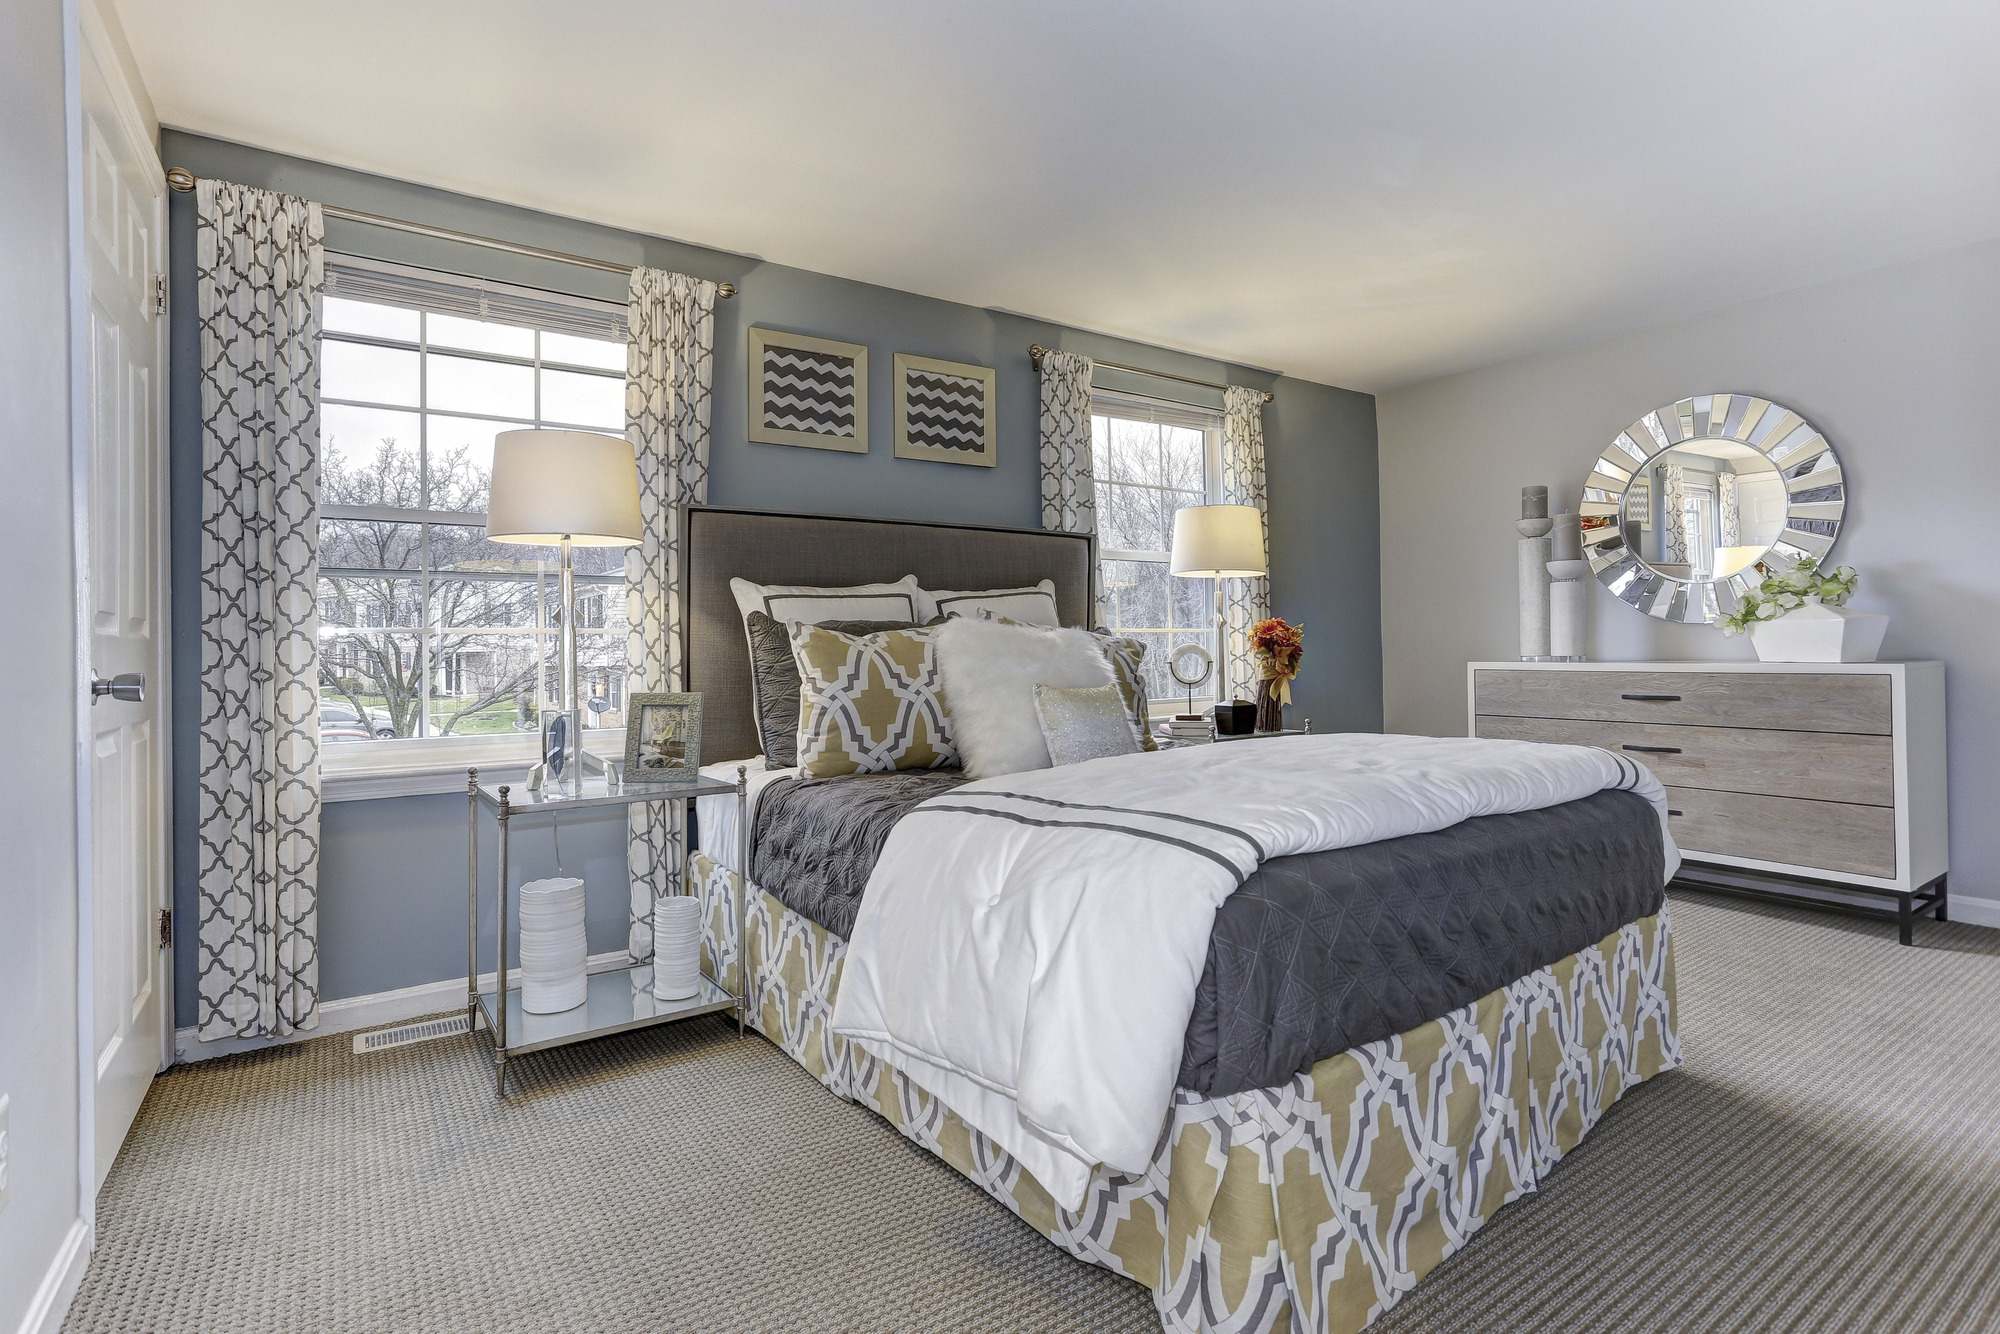 Olde Forge Townhomes in Perry Hall, MD - Bedroom